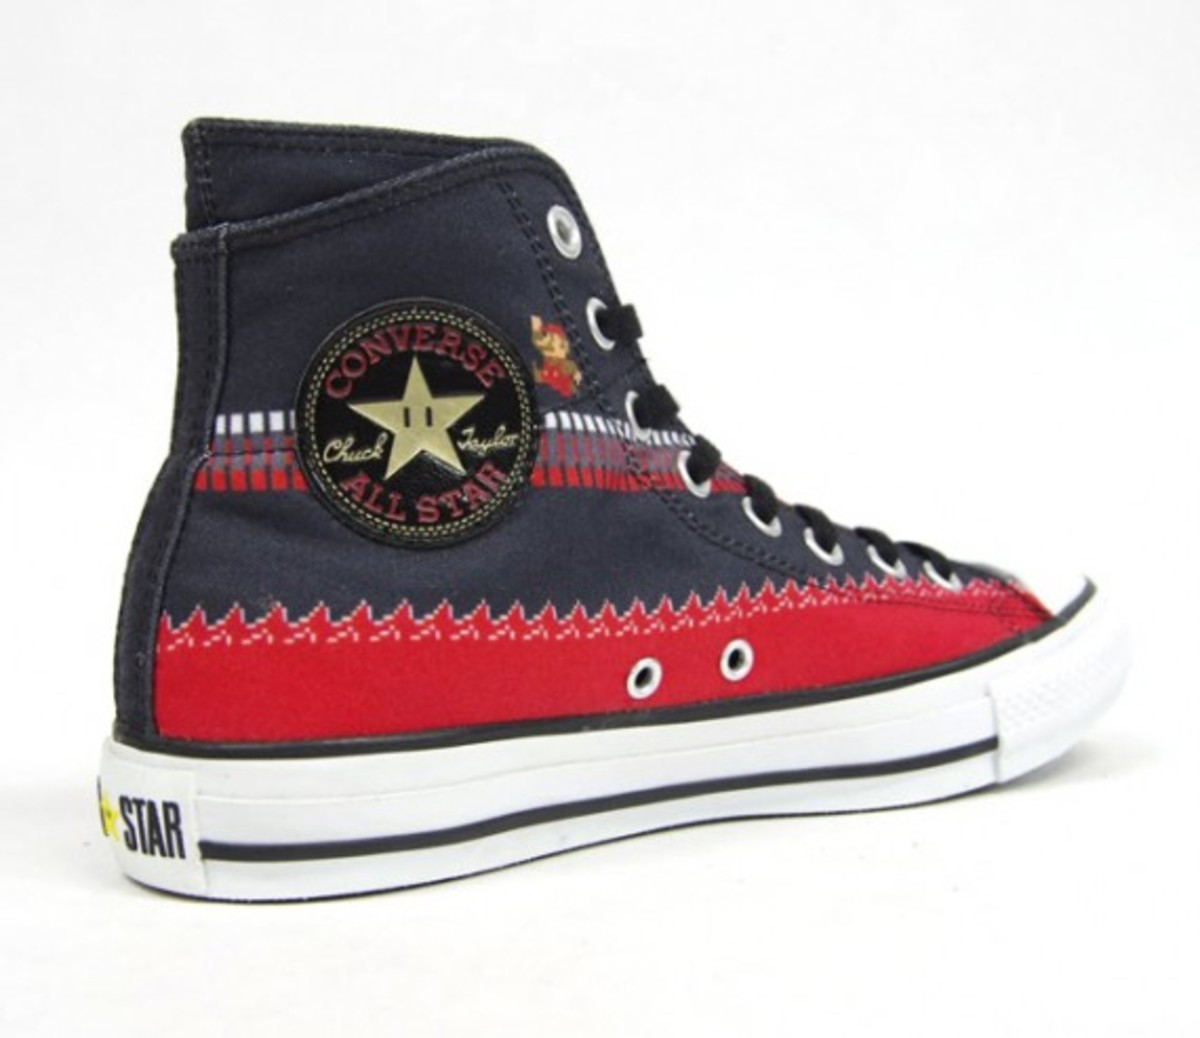 super-mario-brothers-converse-double-upper-a-04